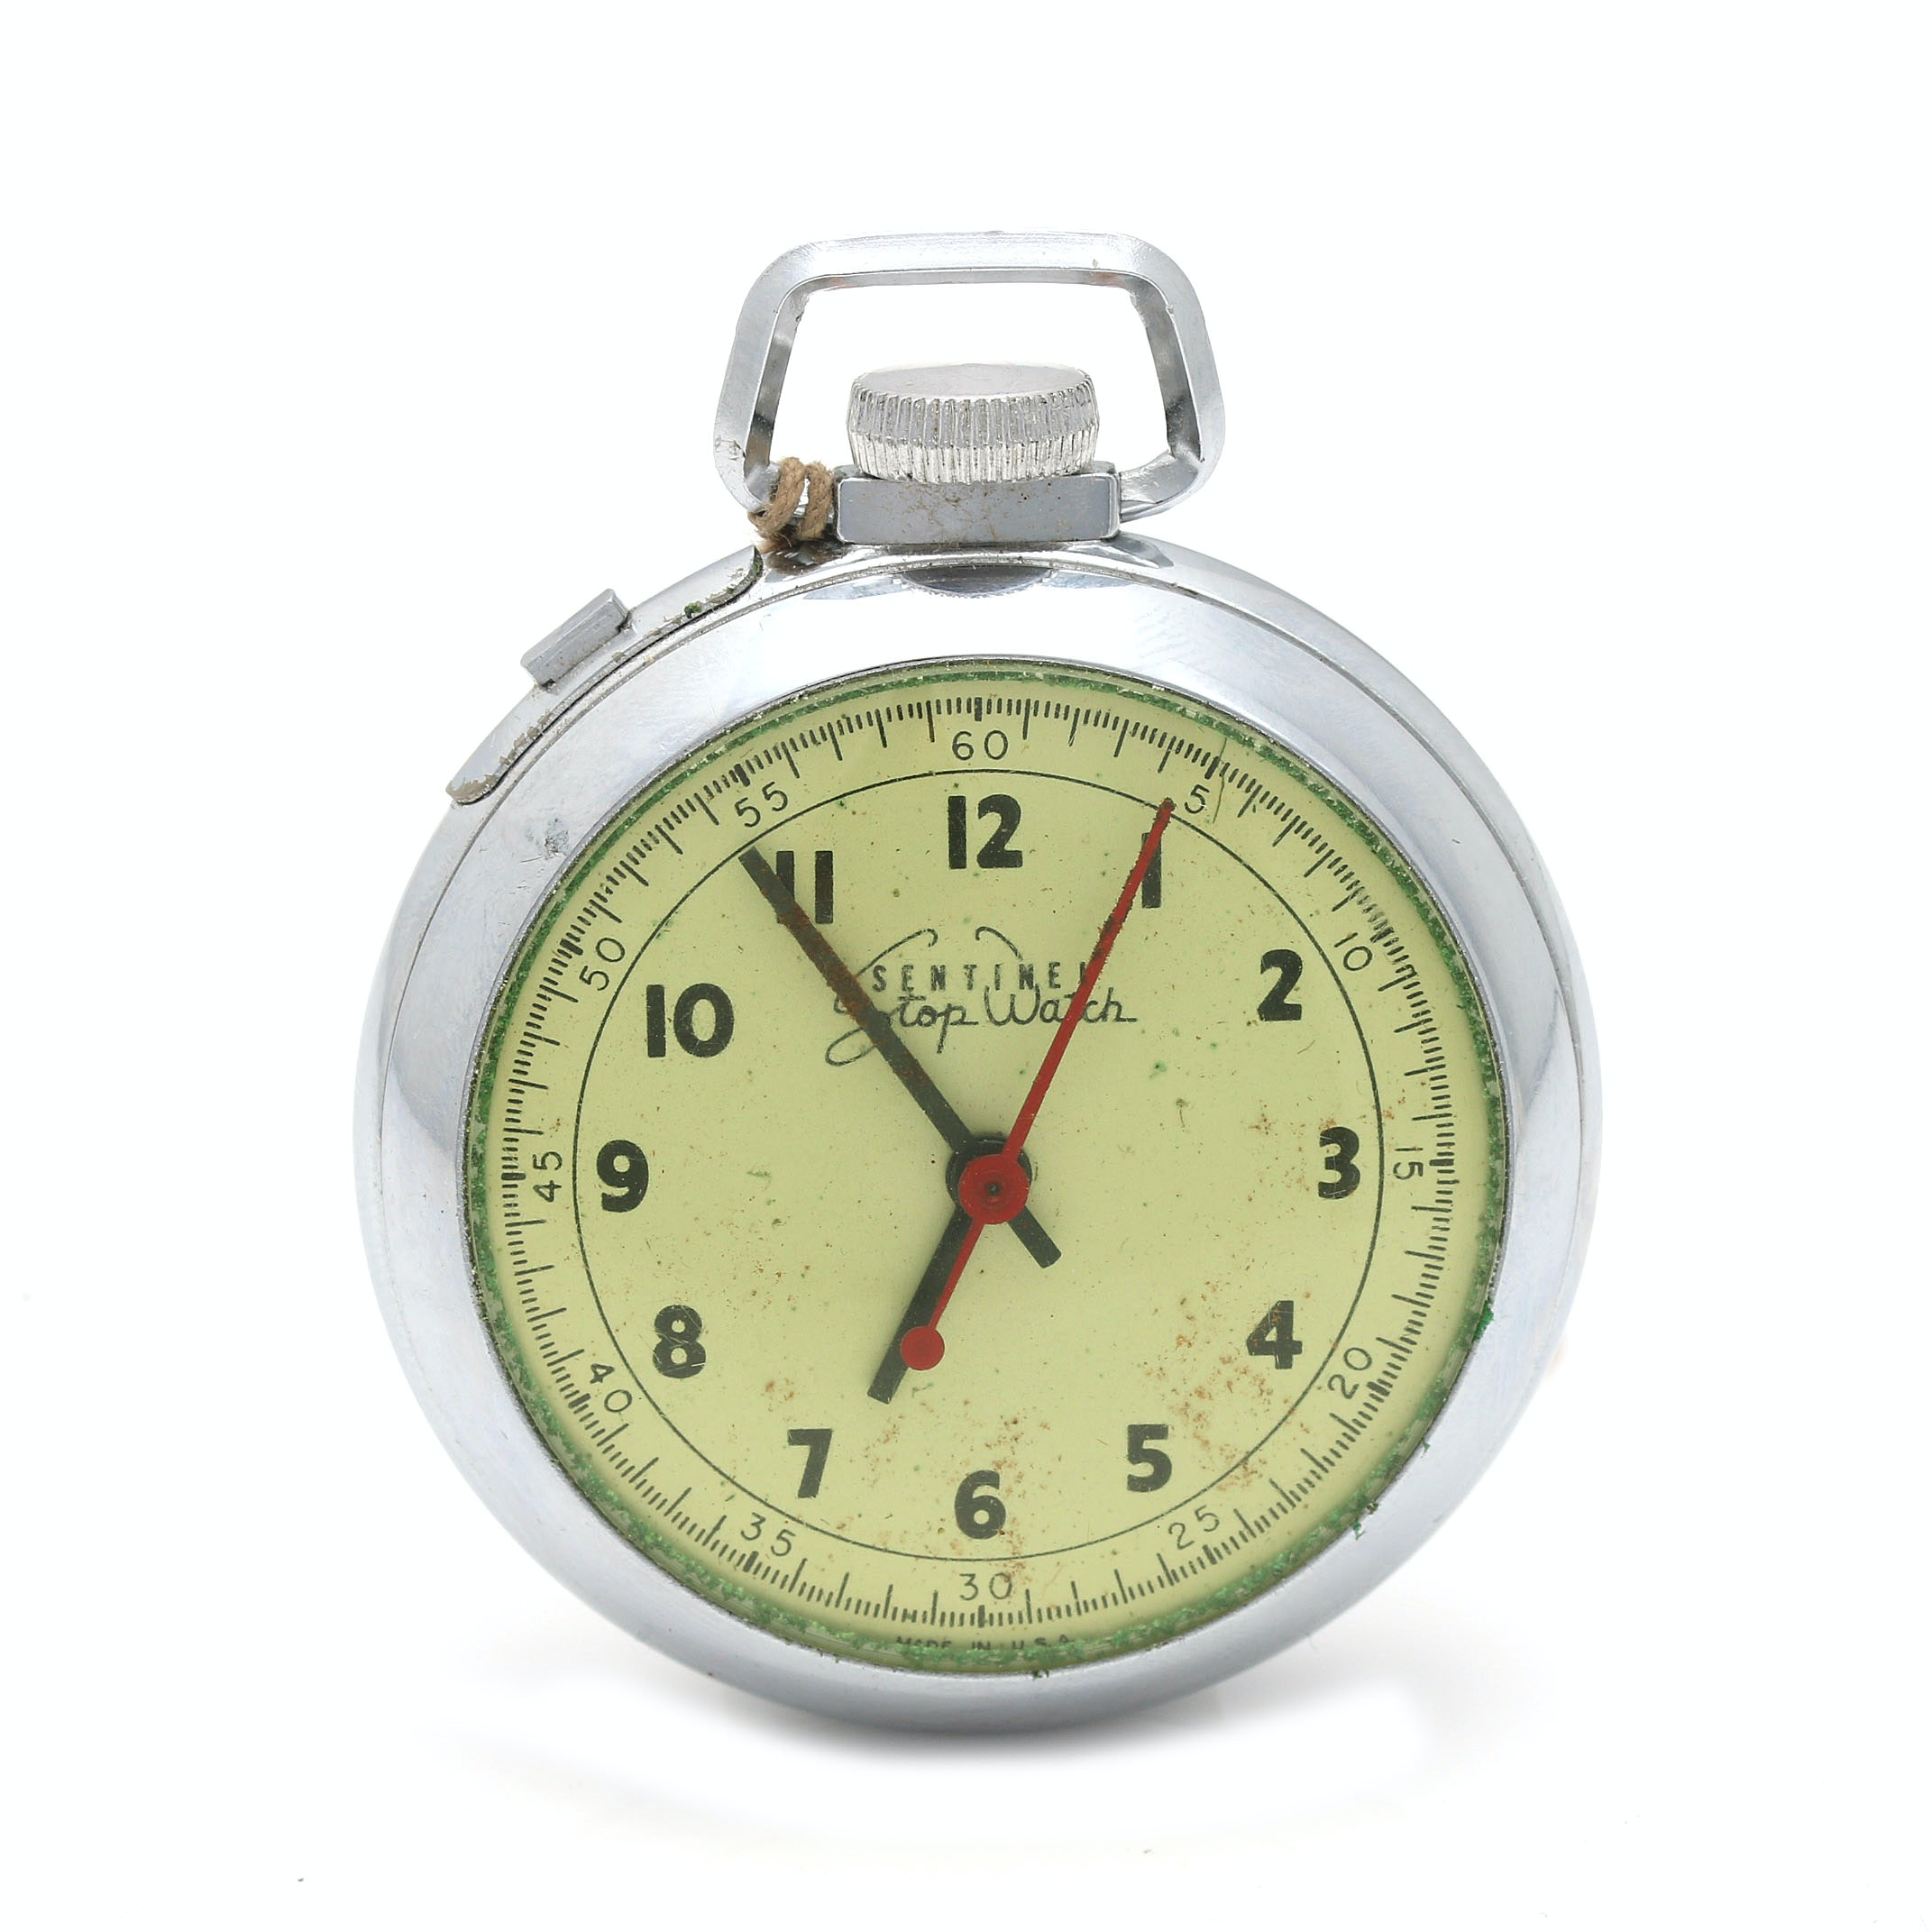 Ingraham Co. Sentinel Silver Tone Stop Watch